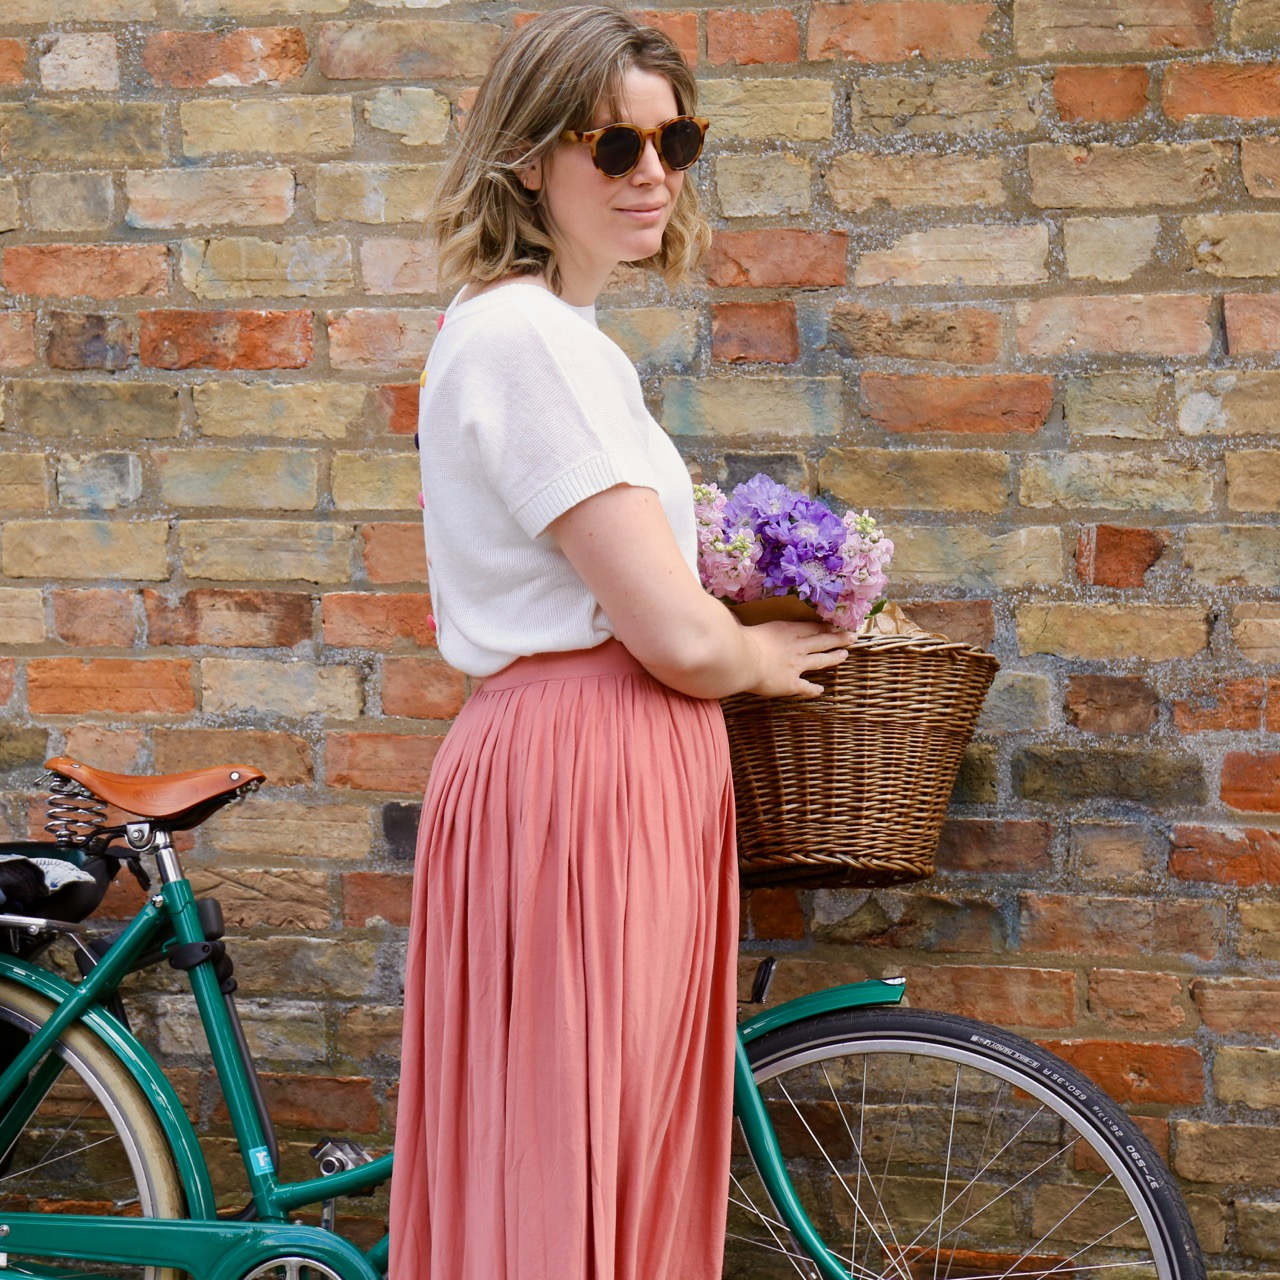 Pink skirt and Pashley Bike